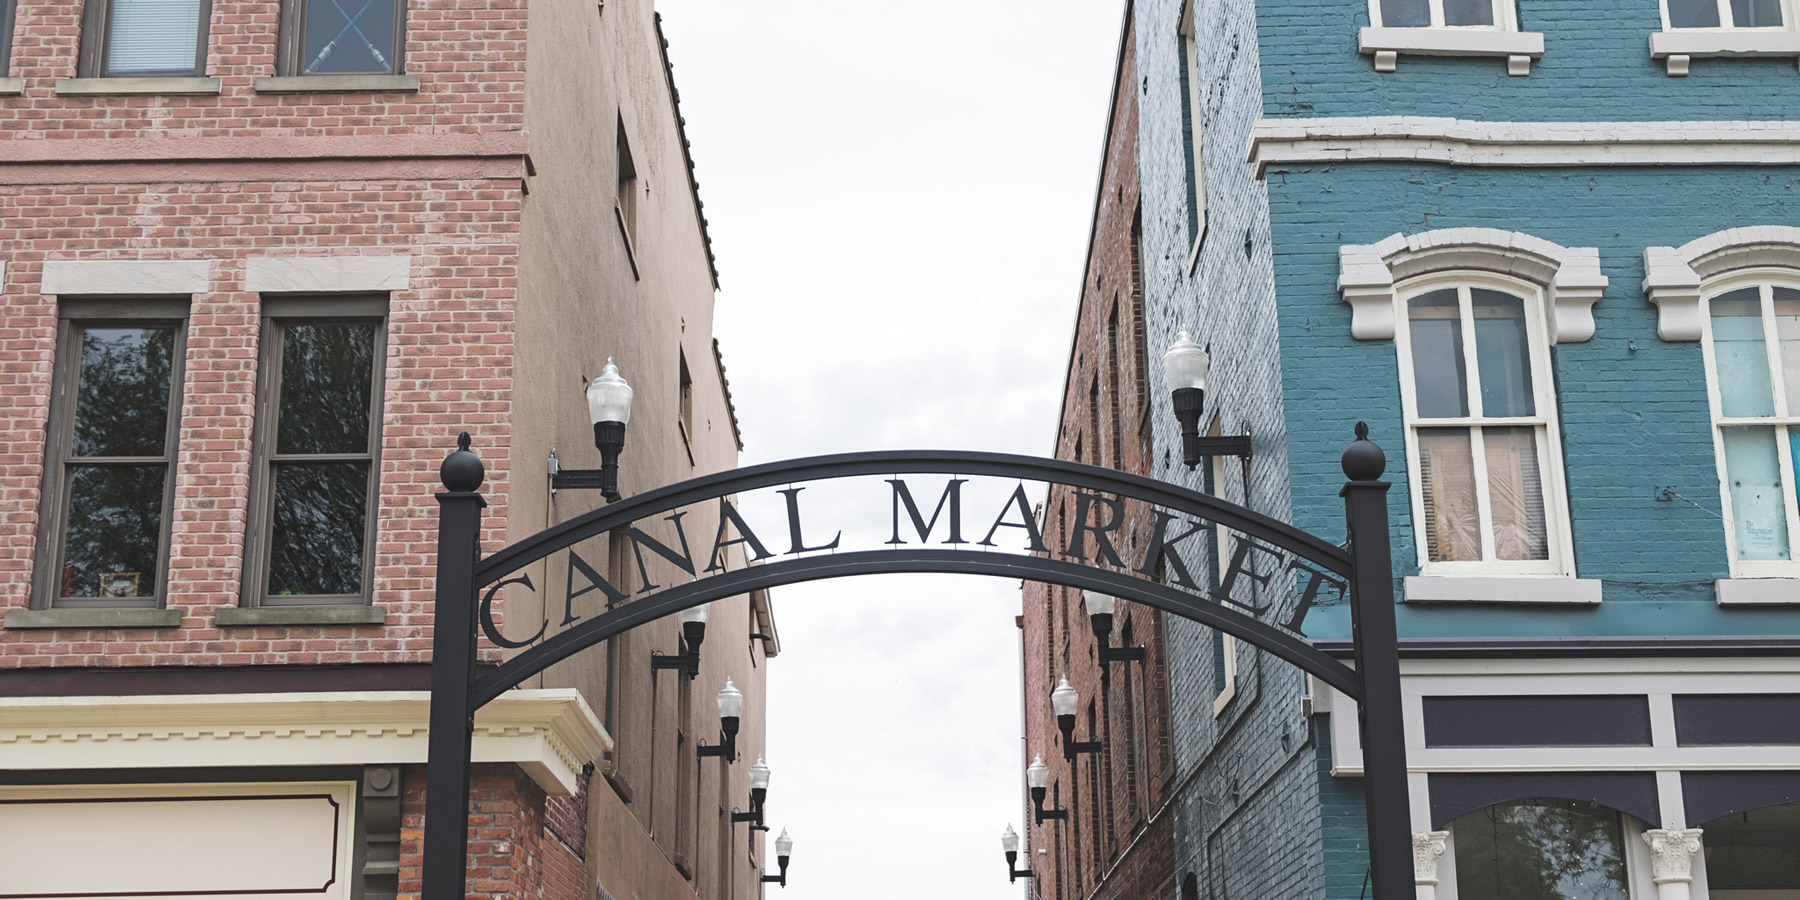 Canal Market District